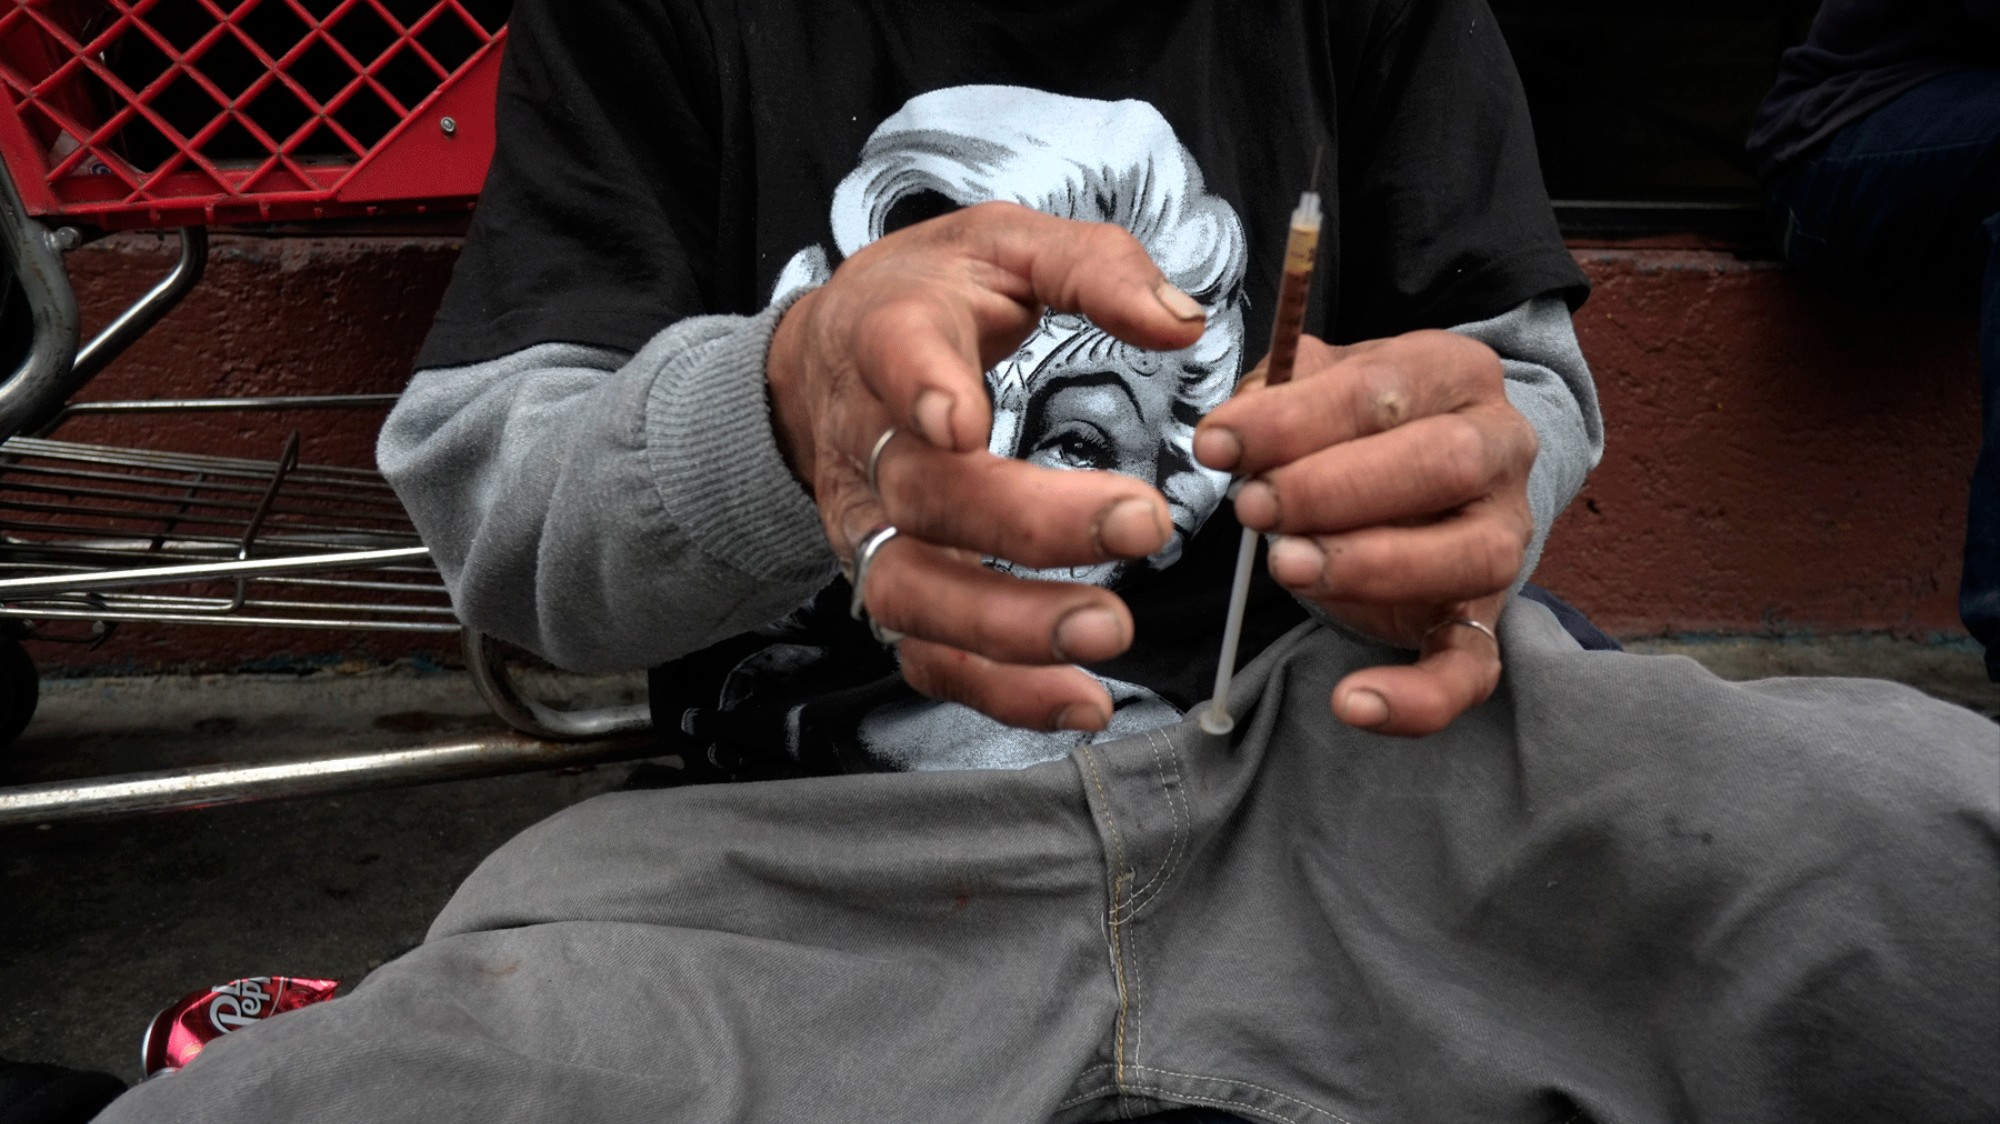 Exclusive: This Is What's Happening in Britain's Drug Scene Right